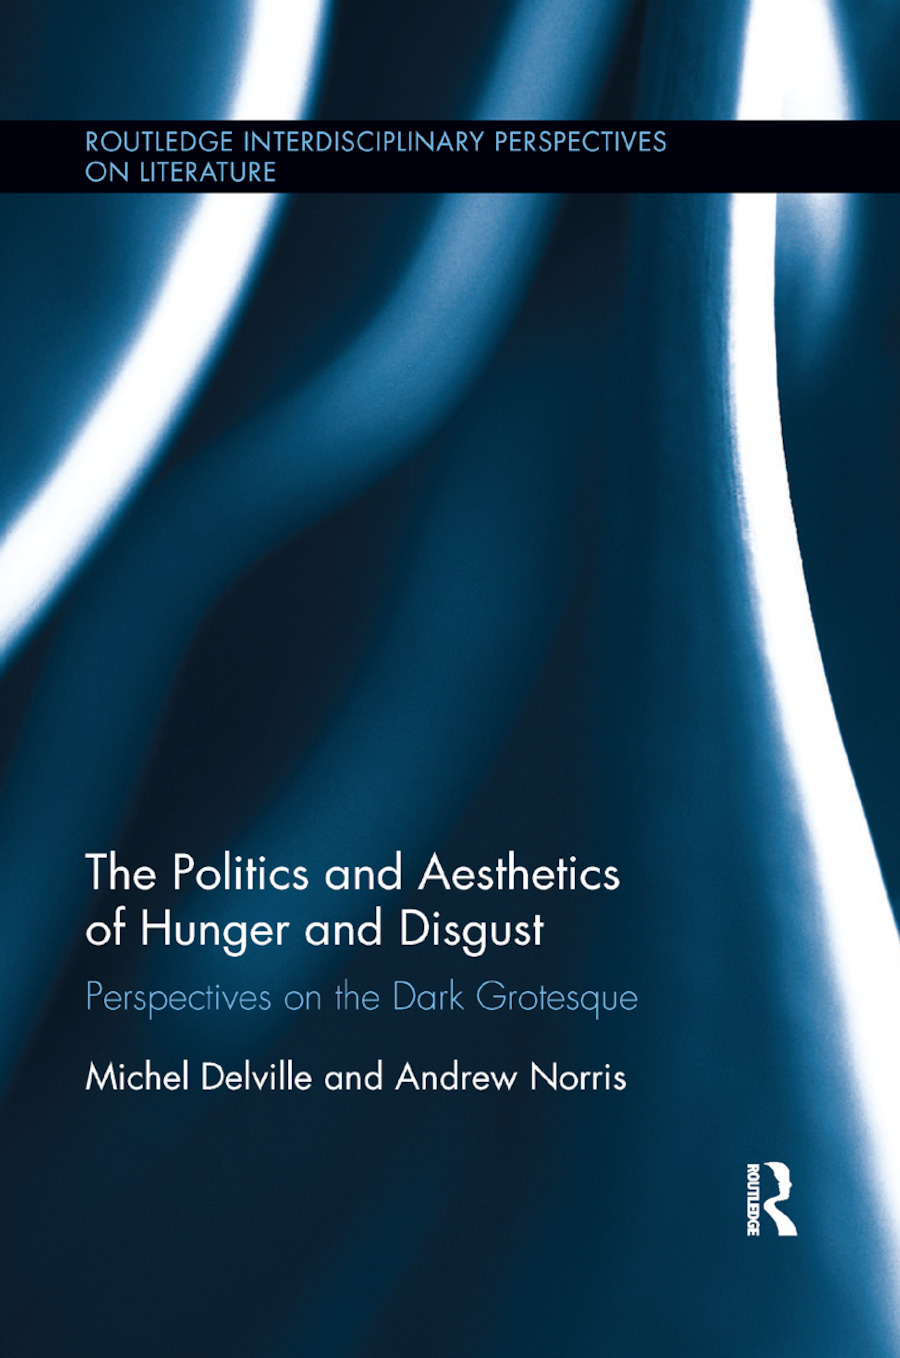 The Politics and Aesthetics of Hunger and Disgust: Perspectives on the Dark Grotesque book cover